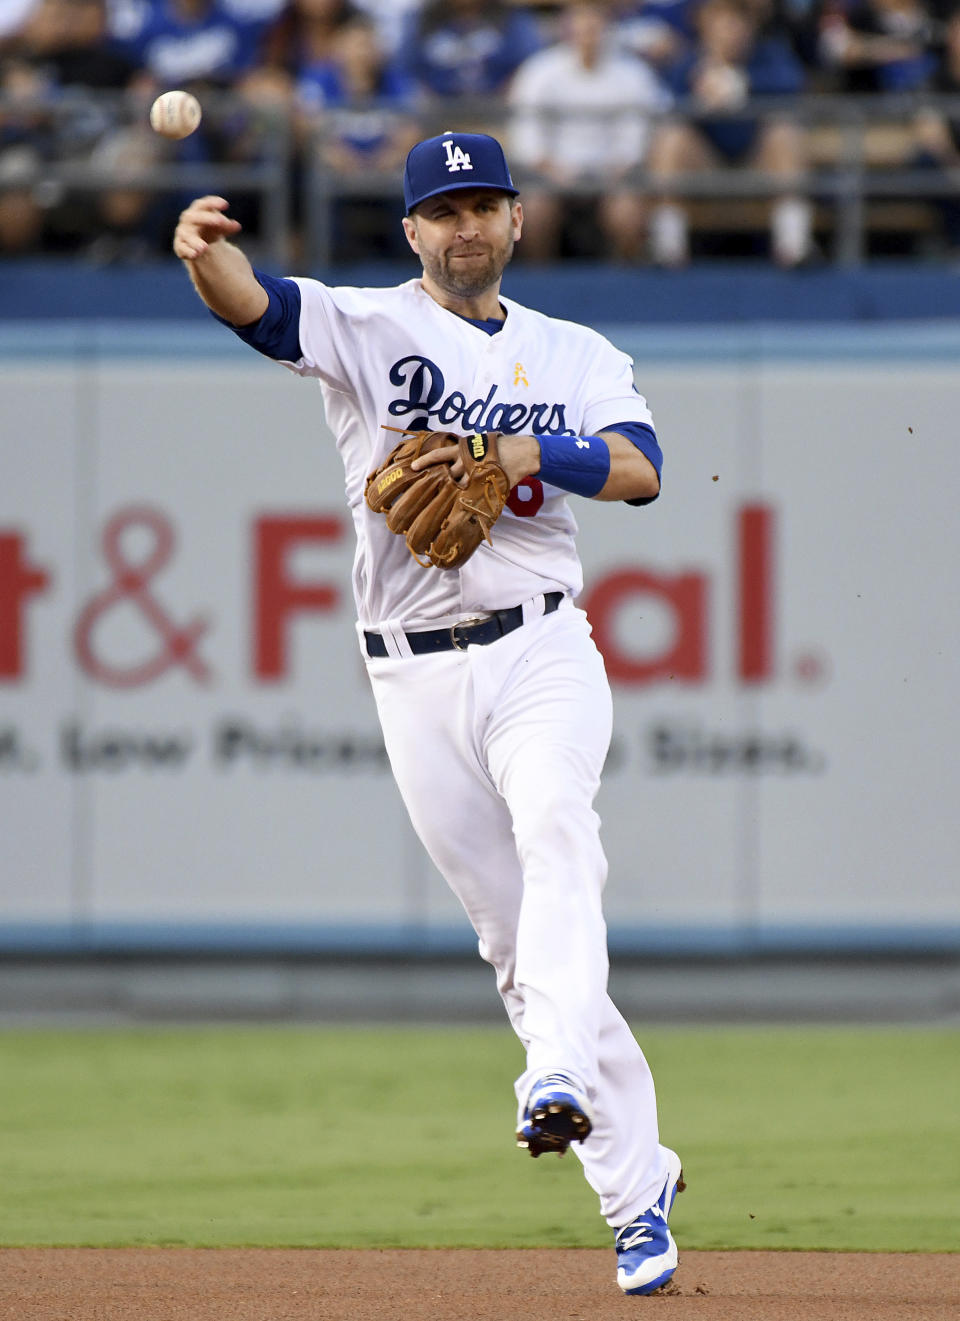 Los Angeles Dodgers second baseman Brian Dozier throws to first base after fielding a grounder by Arizona Diamondbacks' Paul Goldschmidt during the first inning of a baseball game, Saturday, Sept. 1, 2018, in Los Angeles. (AP Photo/Michael Owen Baker)